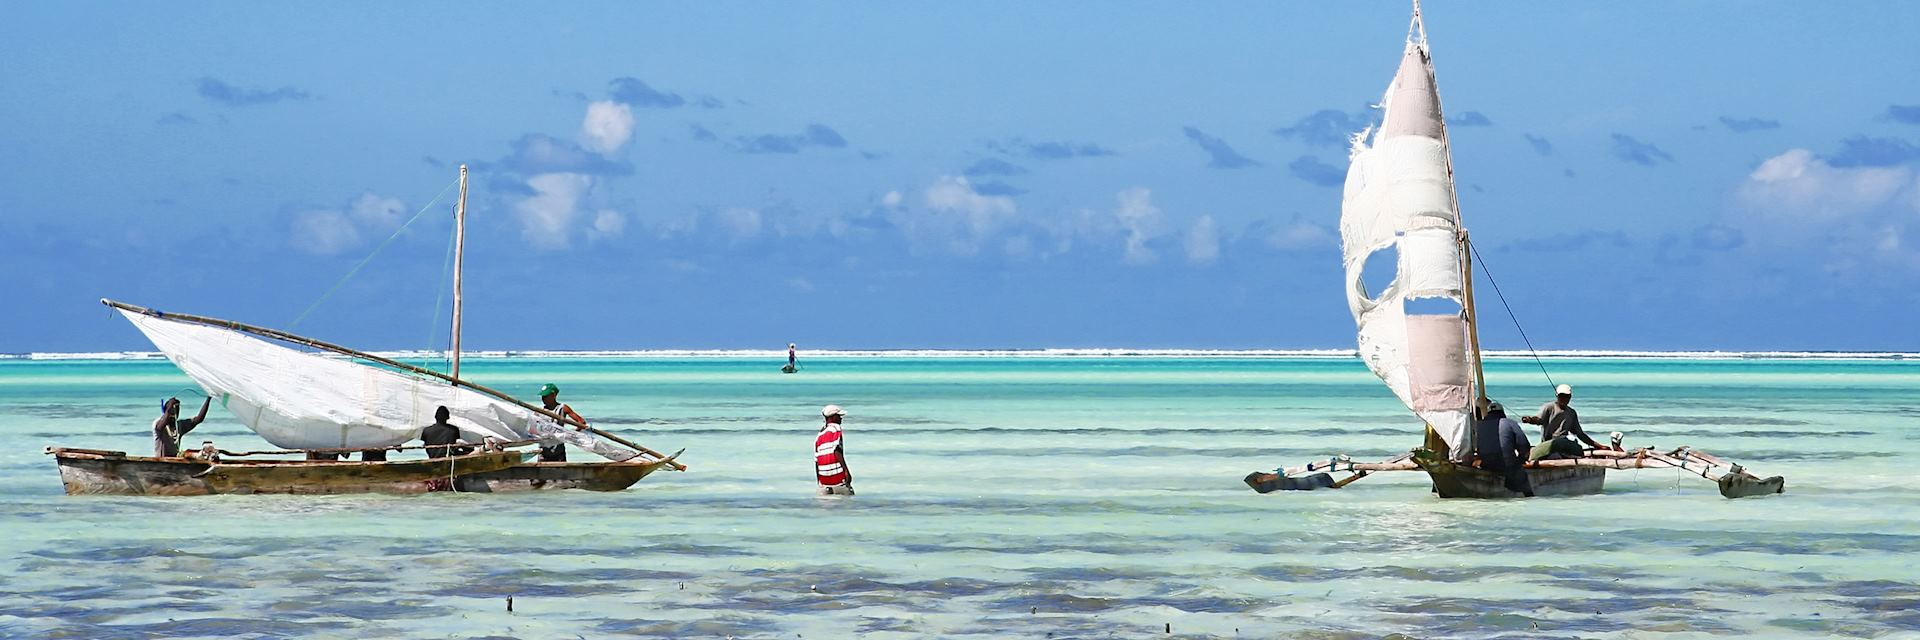 Fishing dhows in Zanzibar